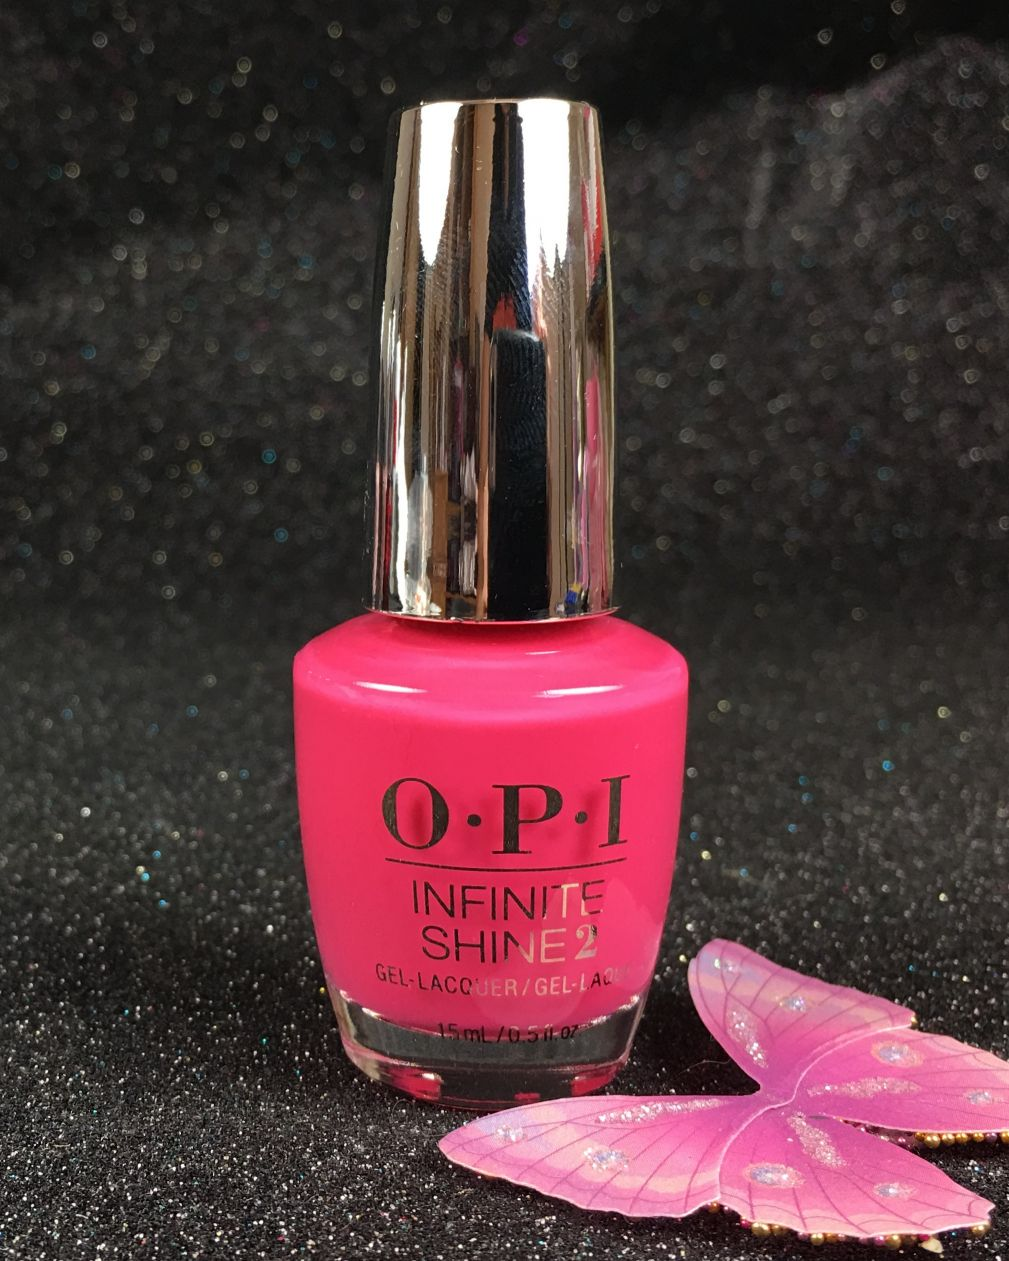 Opi Infinite Shine Strawberry Margarita Islm23 Iconic Shades Collection I Gel Nails Com